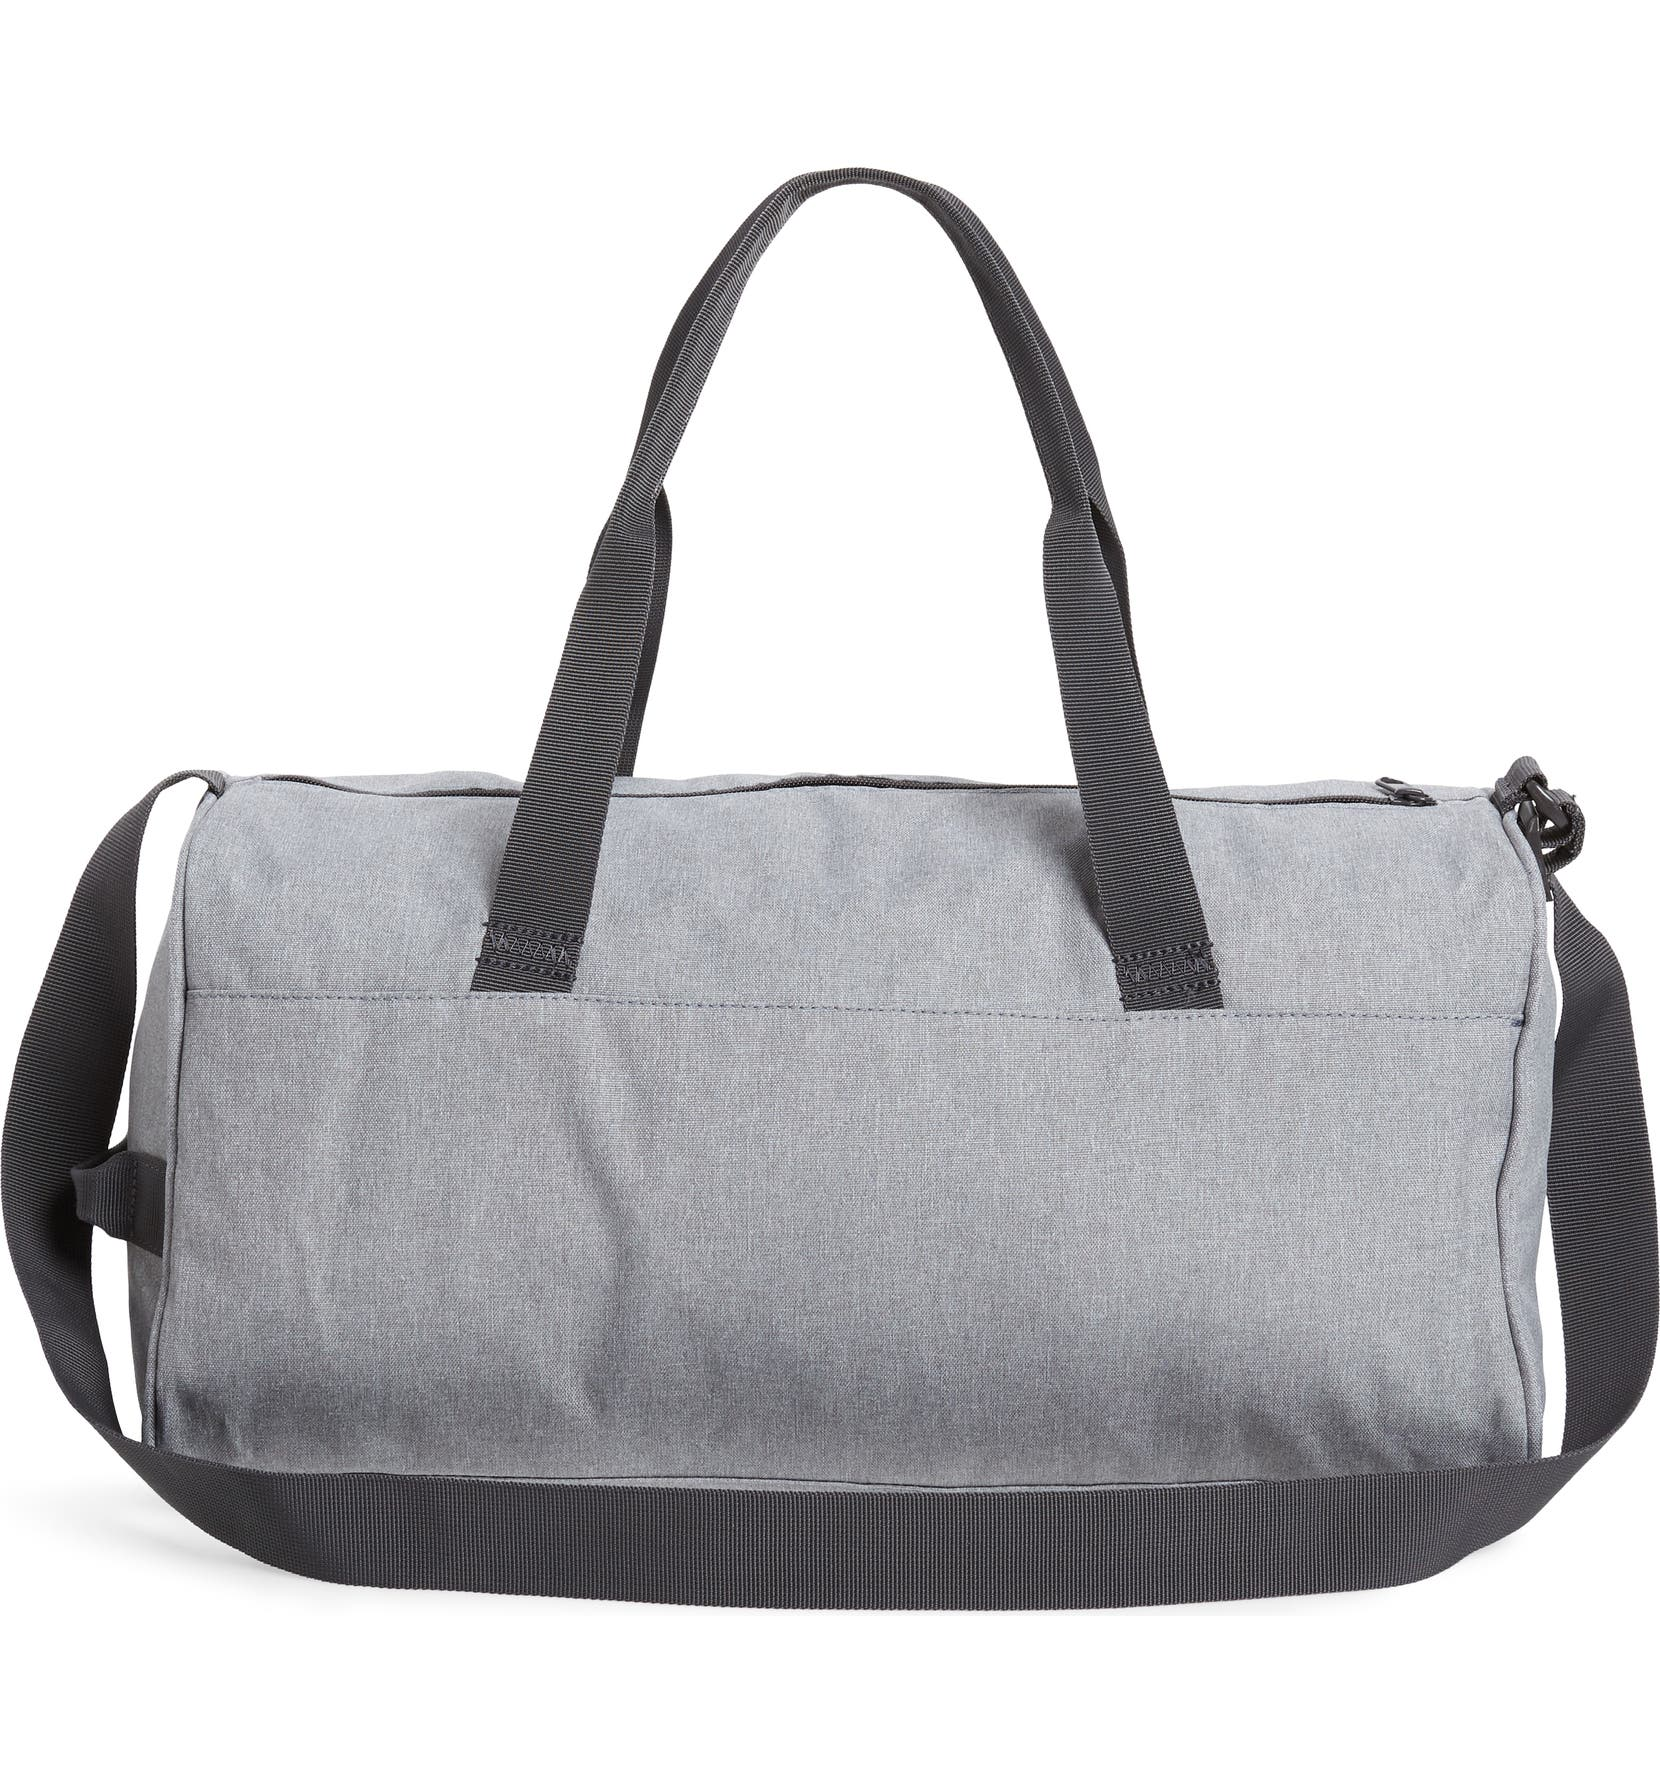 ccdc442b7b8ea5 Under Armour Select Water Resistant Duffel Bag (Kids) | Nordstrom